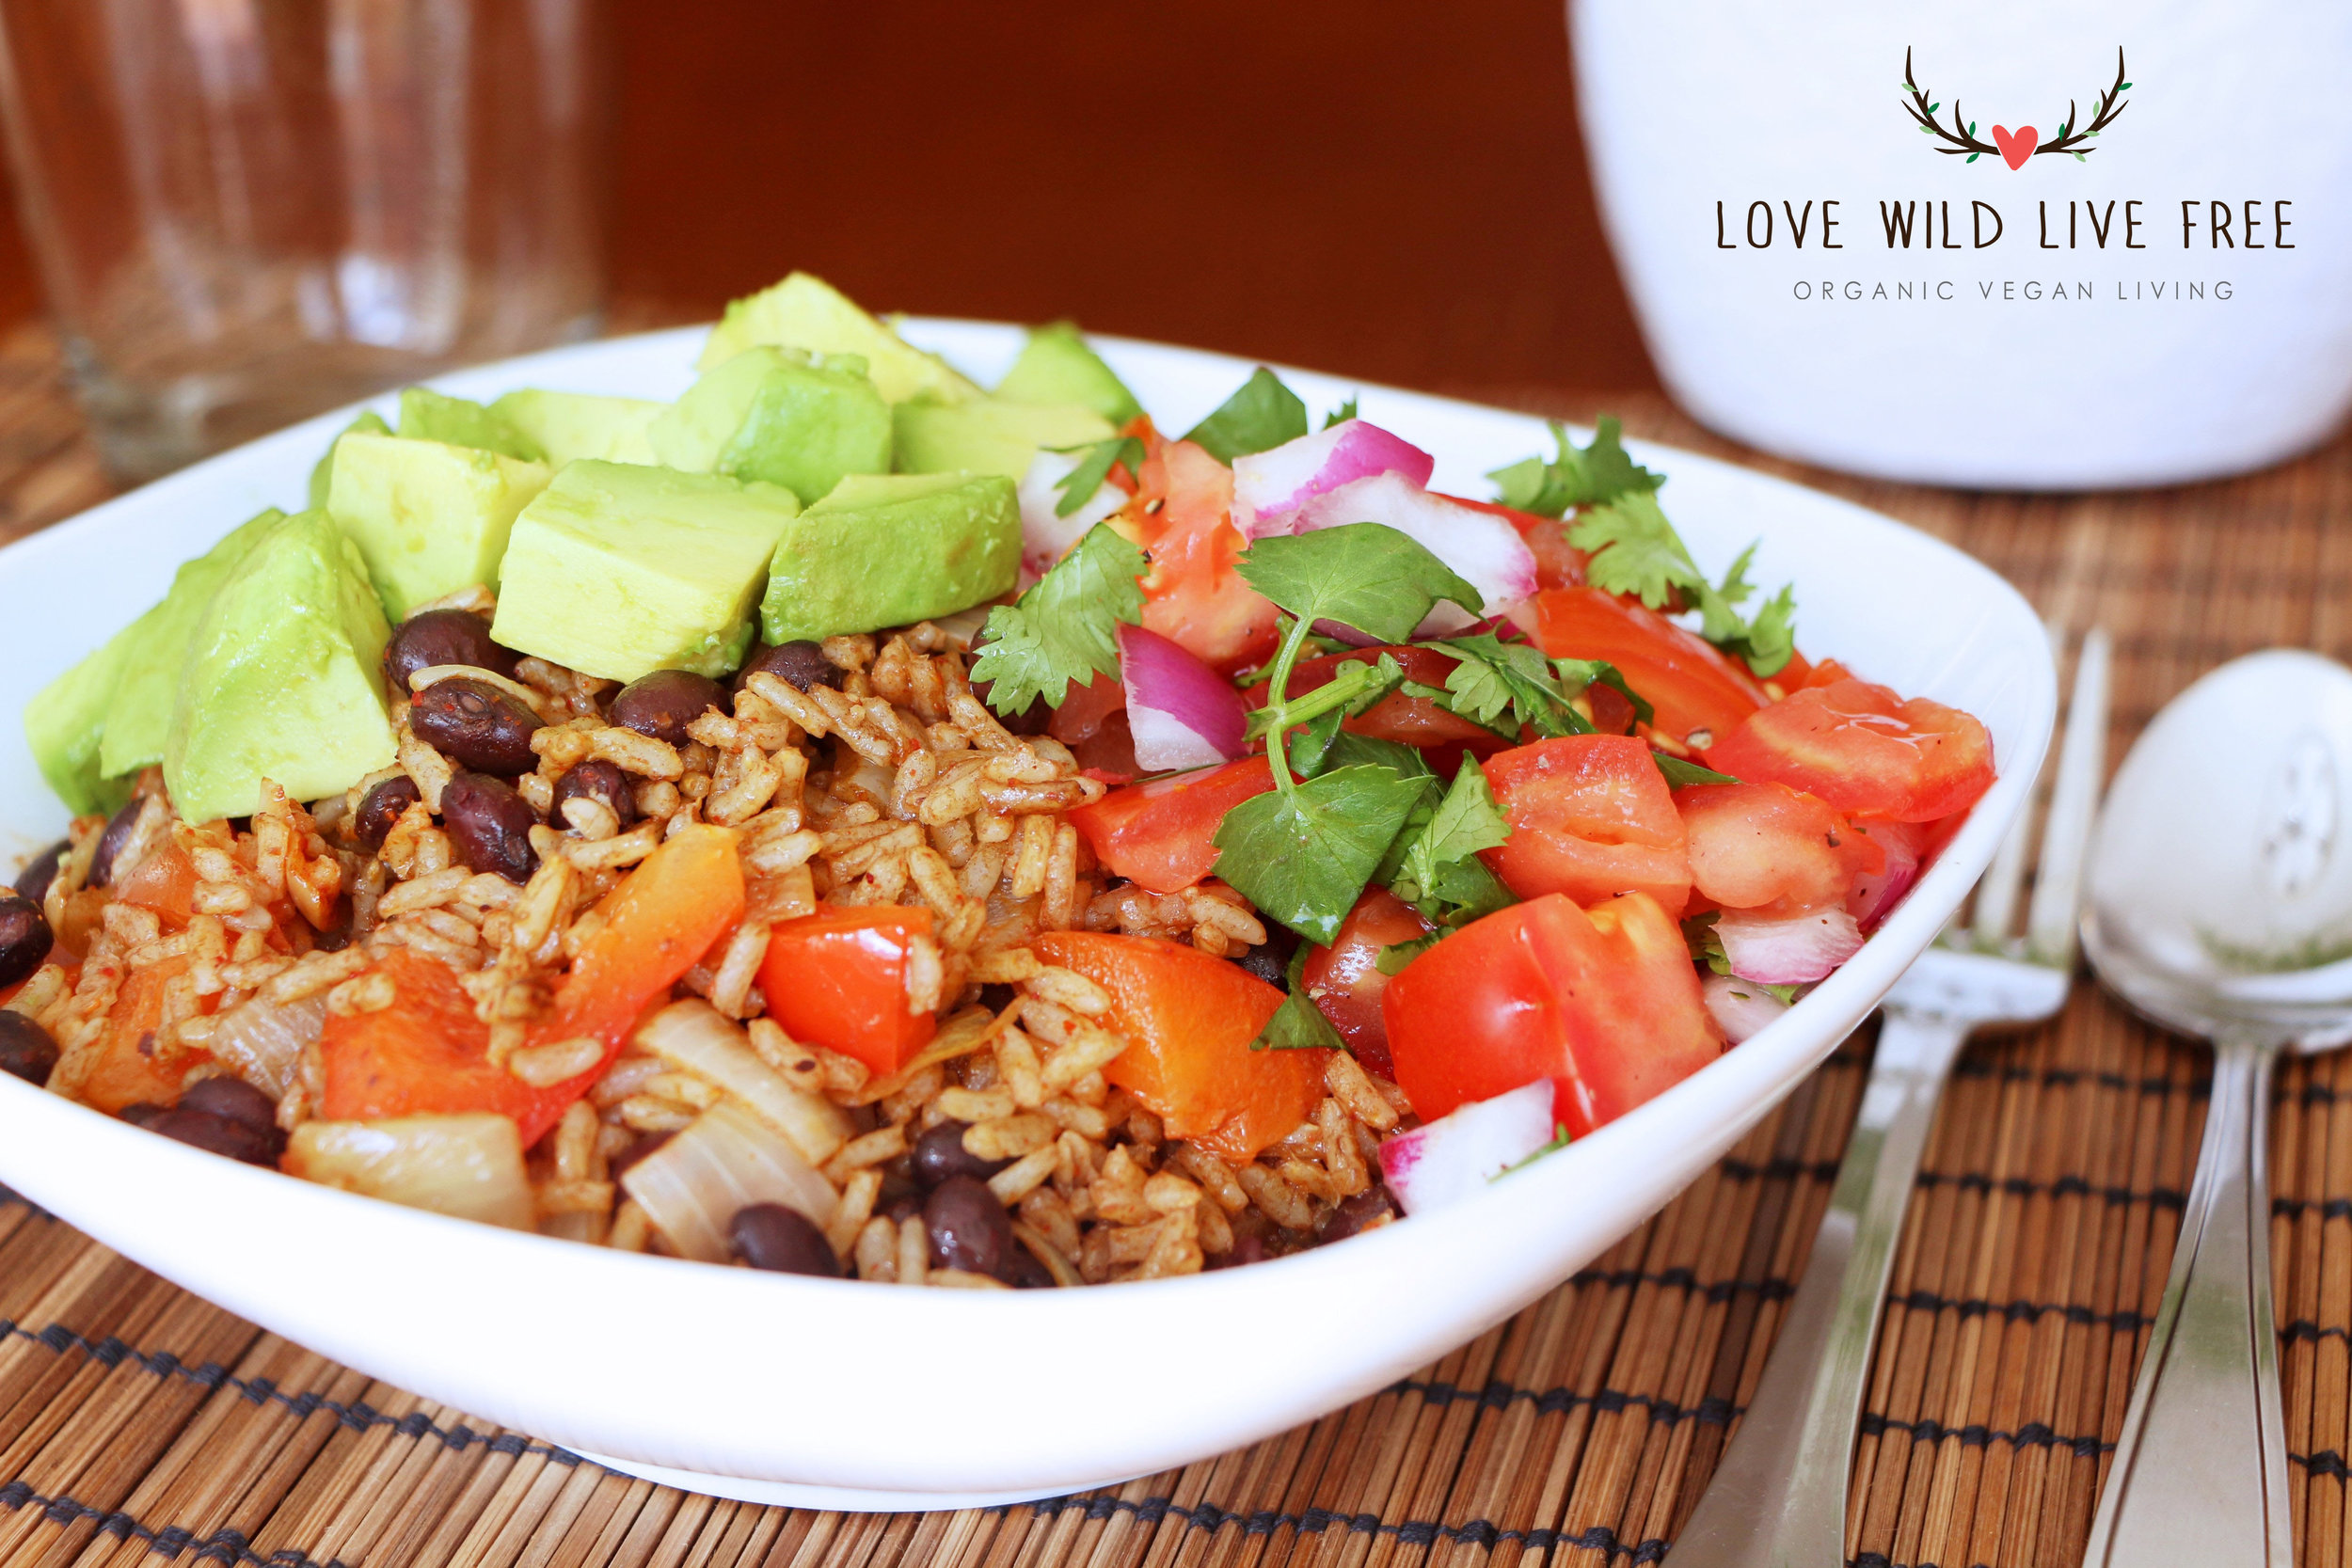 Seriously satisfying vegan burrito bowl filled with black beans, sautéed onions and peppers,fresh salsa and avocado.